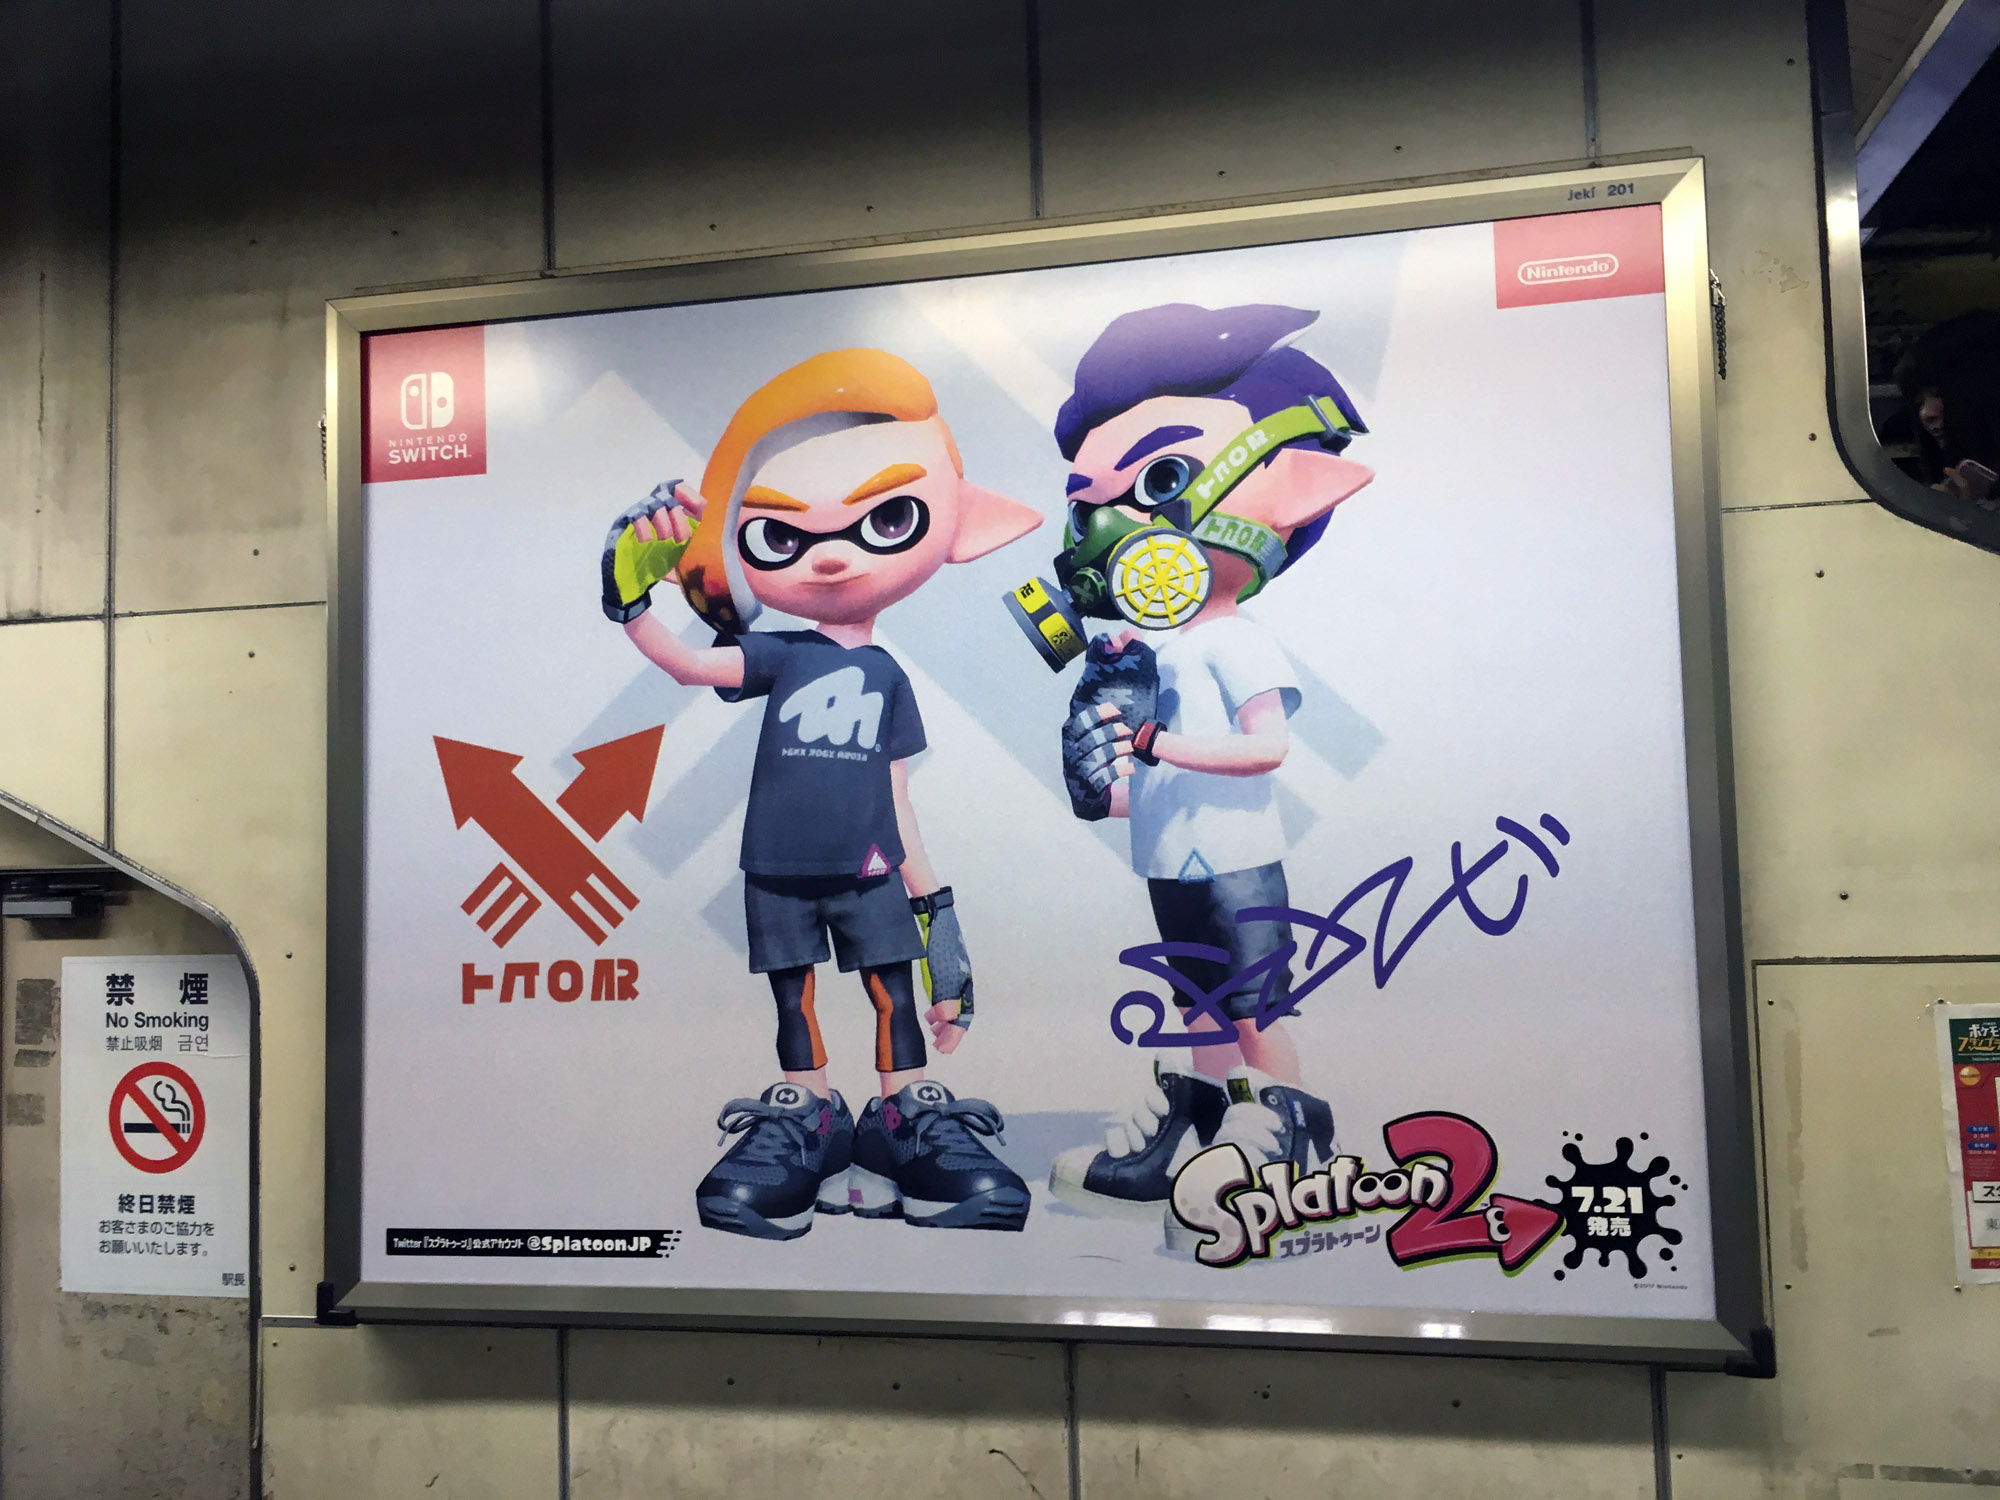 Nintendo Switch And Splatoon Madness In Japan Part 1